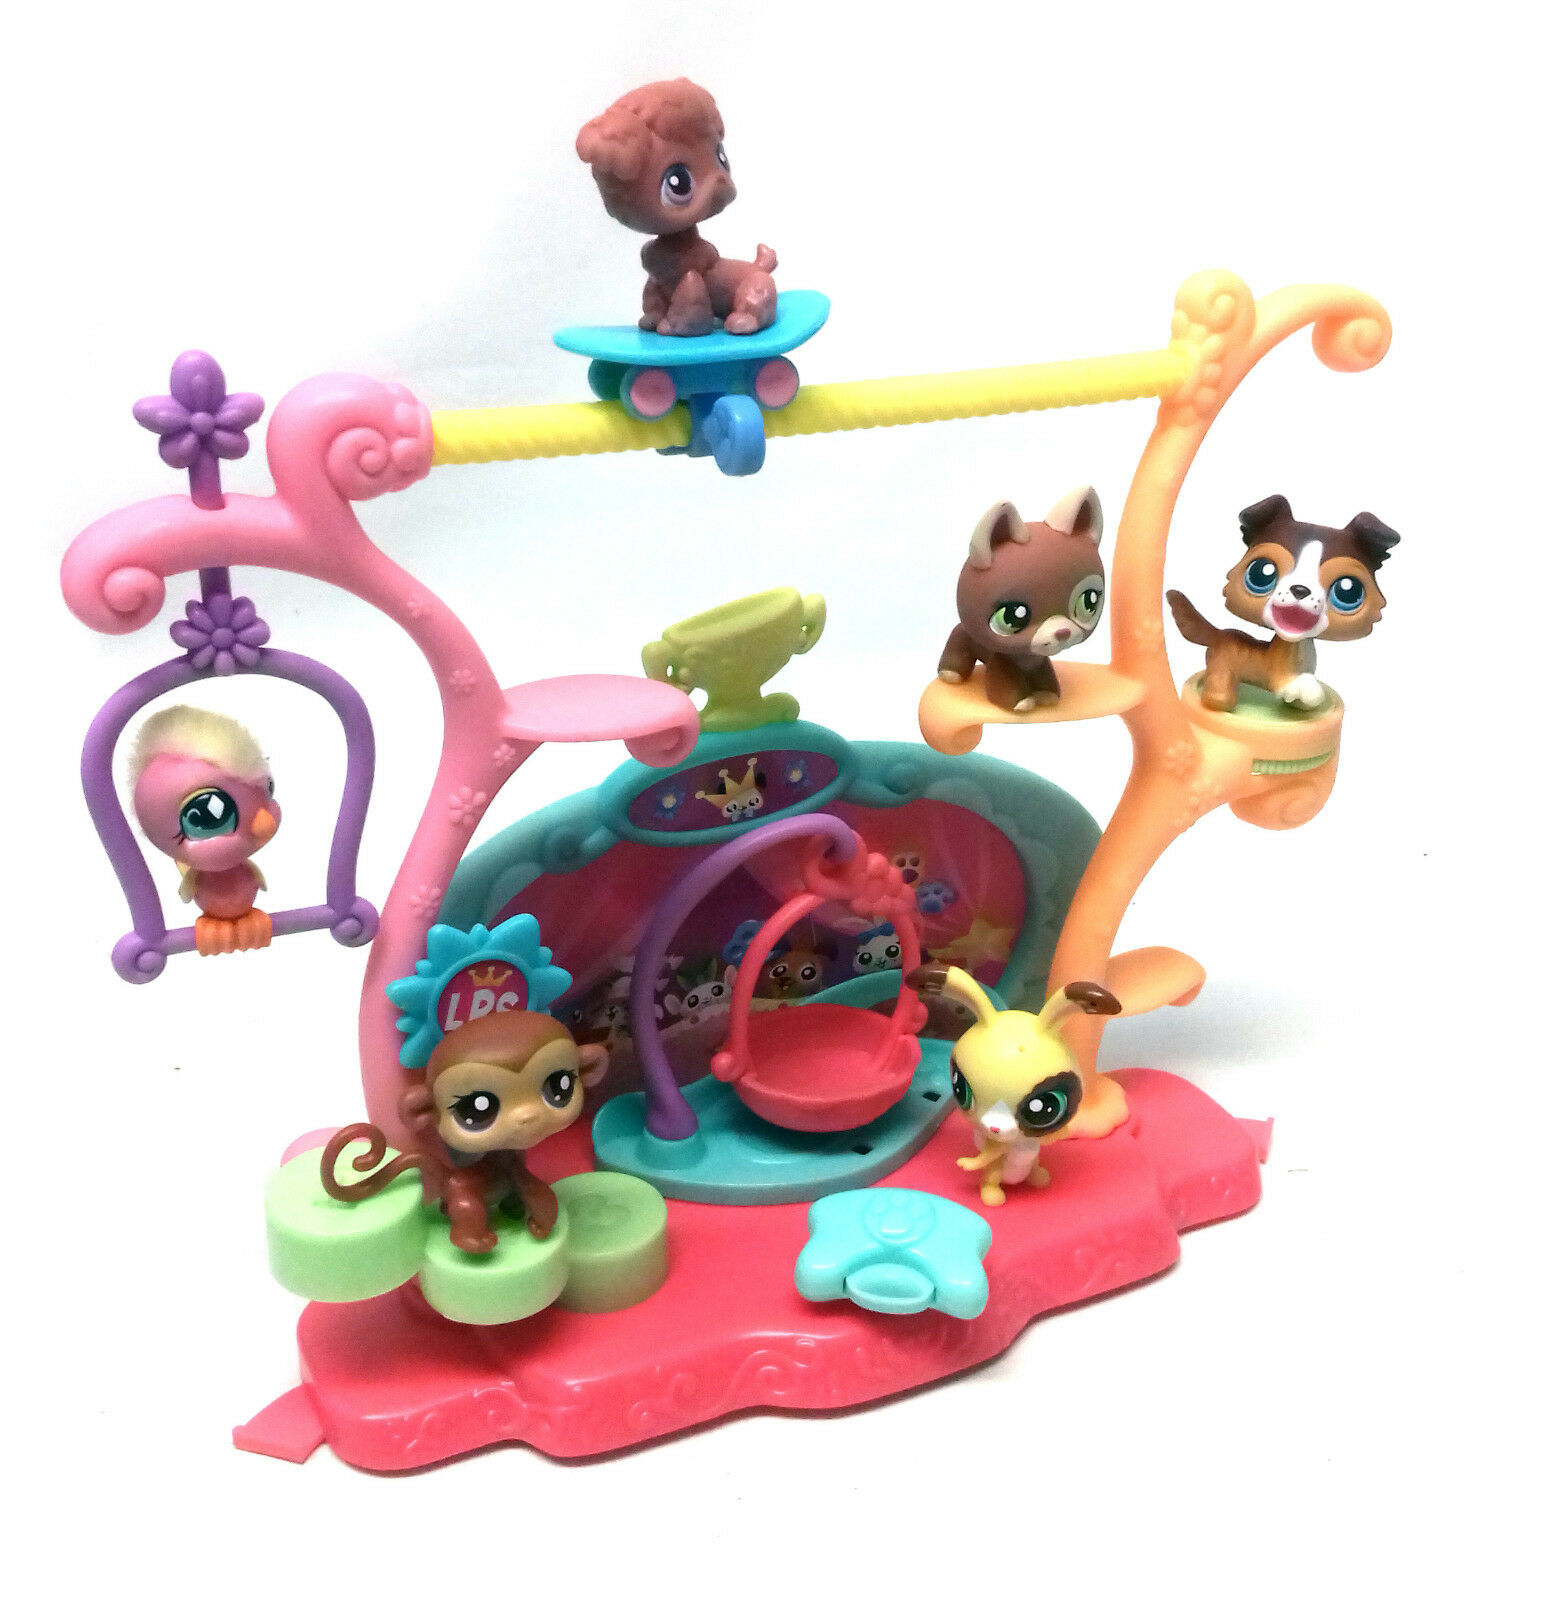 THE LITTLEST PET SHOP animal toy figures playset accesory set lot, NICE